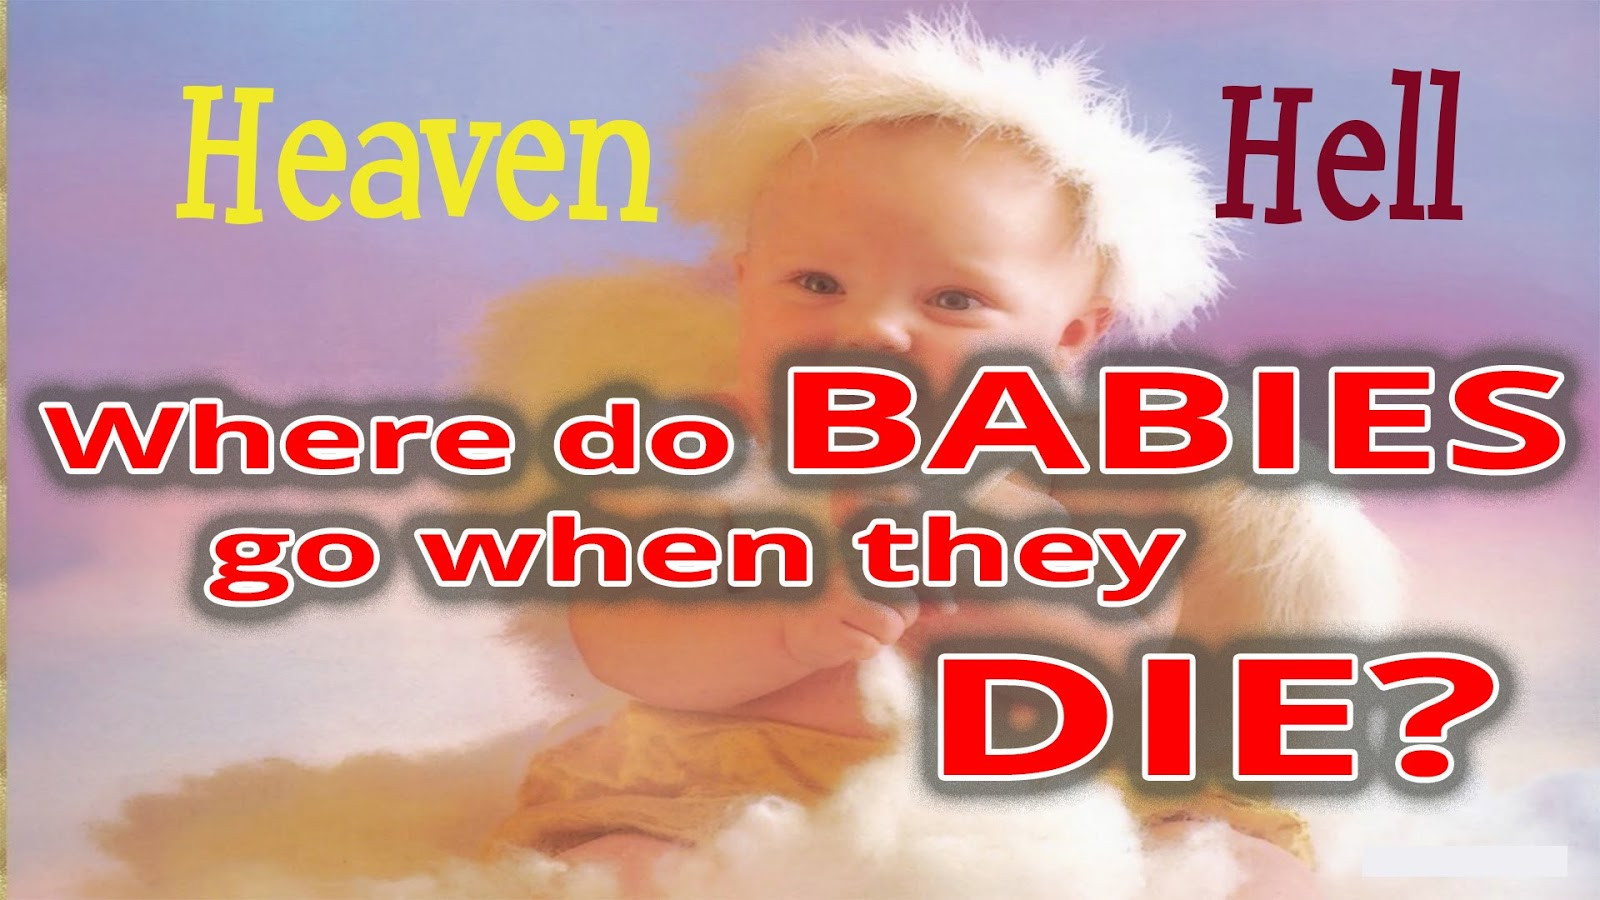 WHERE DO BABIES GO WHEN THEY DIE?